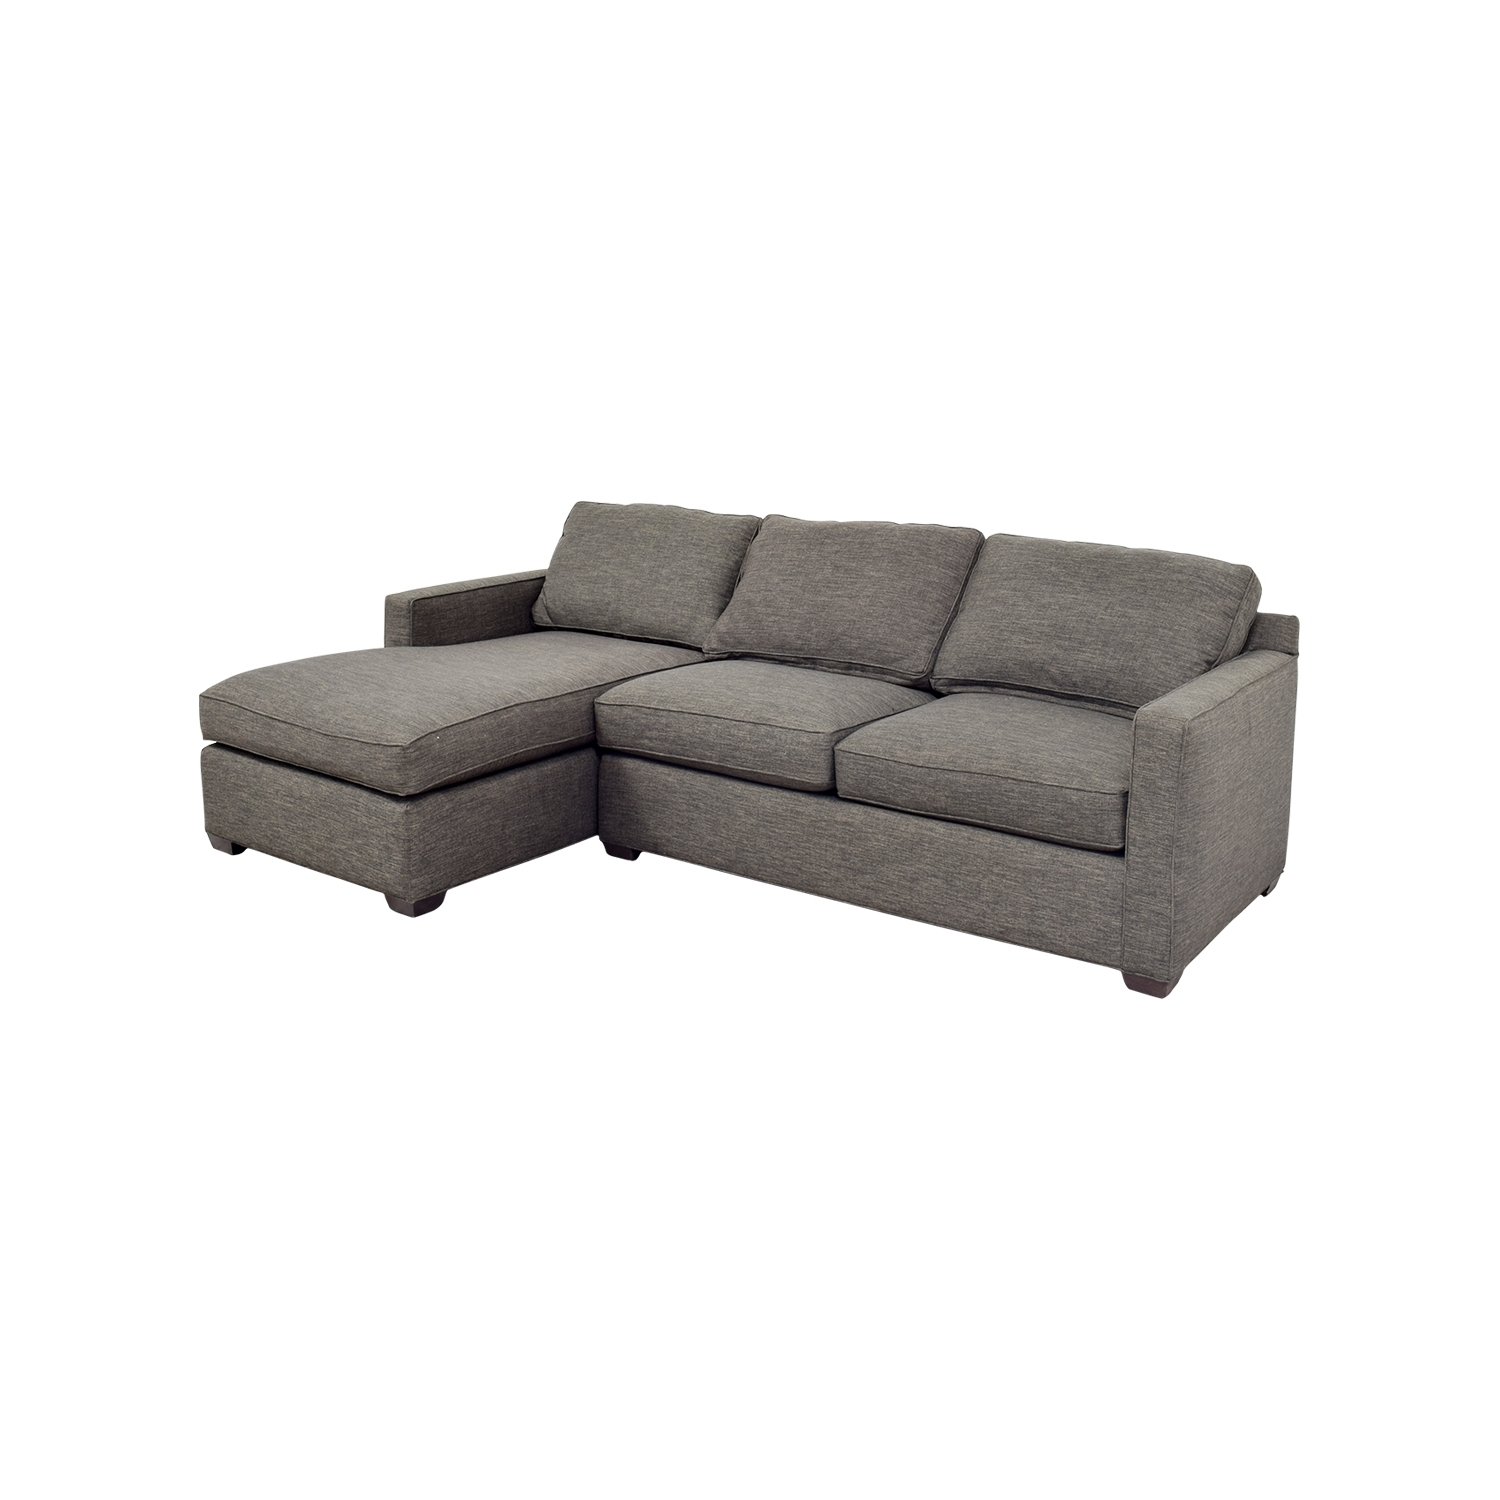 [%63% Off – Crate And Barrel Crate & Barrel Davis Grey Chaise Throughout 2017 Grey Chaise Sofas|Grey Chaise Sofas With Most Recently Released 63% Off – Crate And Barrel Crate & Barrel Davis Grey Chaise|Current Grey Chaise Sofas With Regard To 63% Off – Crate And Barrel Crate & Barrel Davis Grey Chaise|Preferred 63% Off – Crate And Barrel Crate & Barrel Davis Grey Chaise Within Grey Chaise Sofas%] (View 14 of 15)